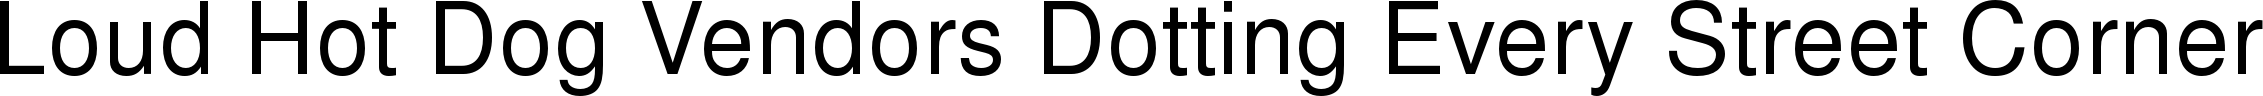 Korolev Condensed Pro Medium